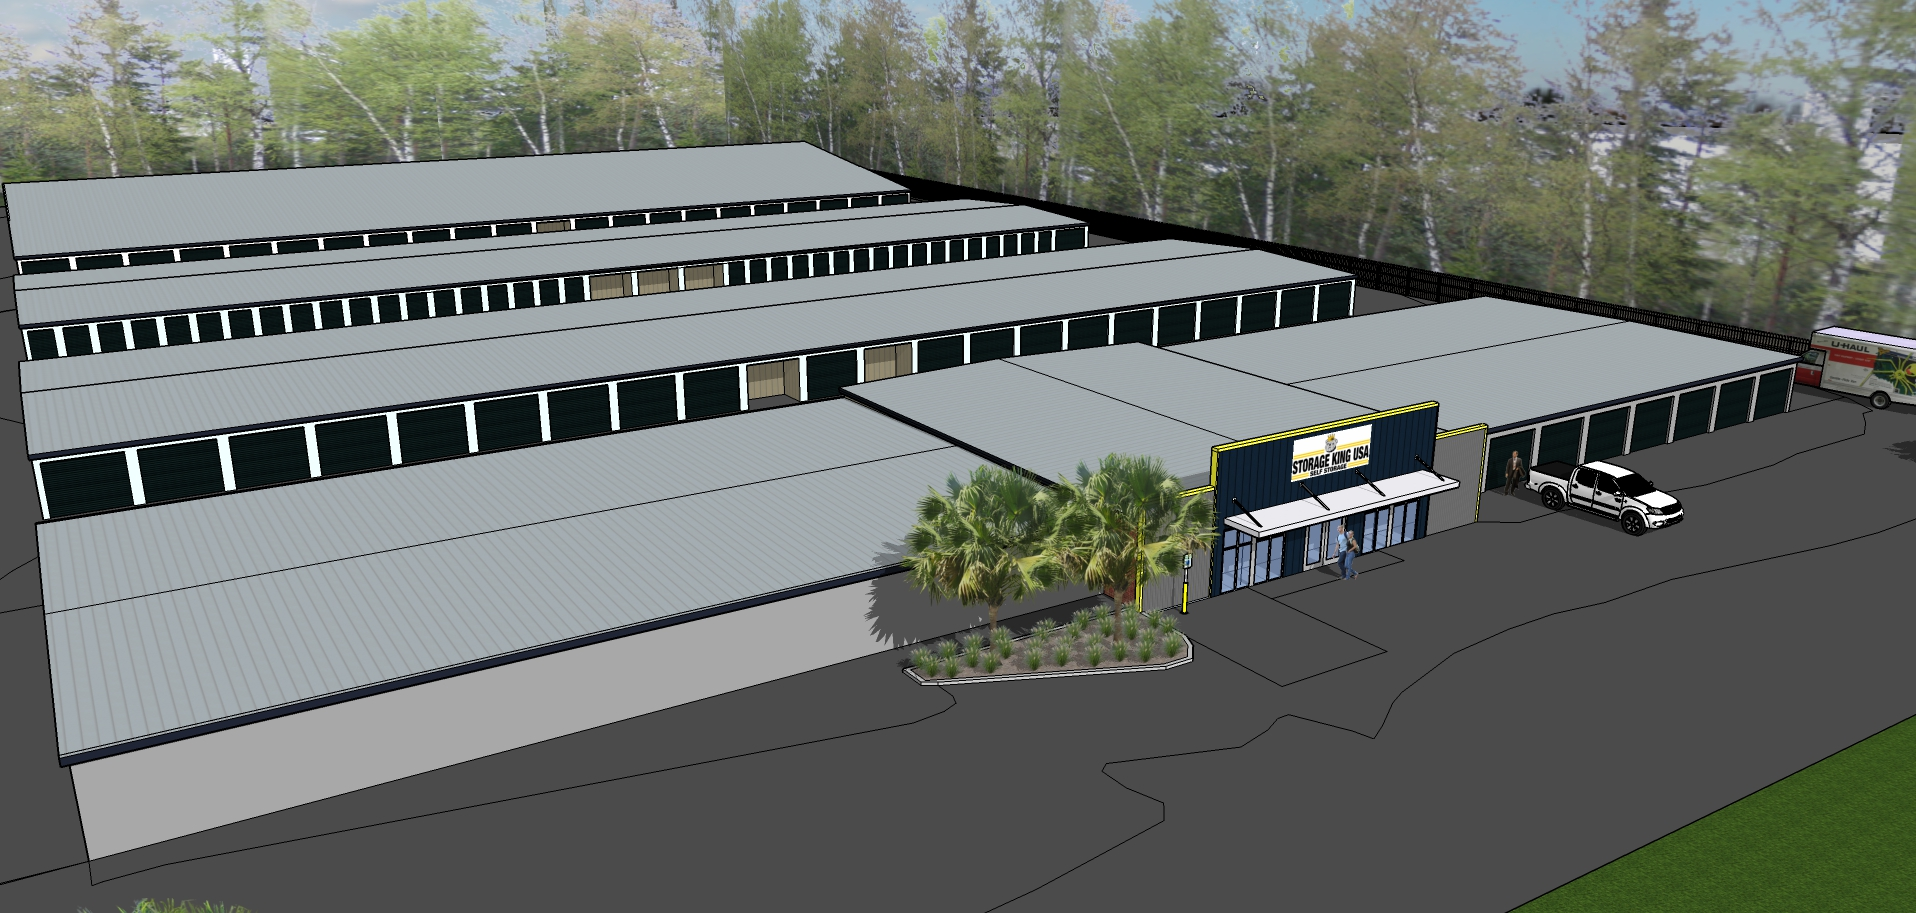 Moncks Corner, SC – Completed 31,000 square foot expansion Q2 of 2019